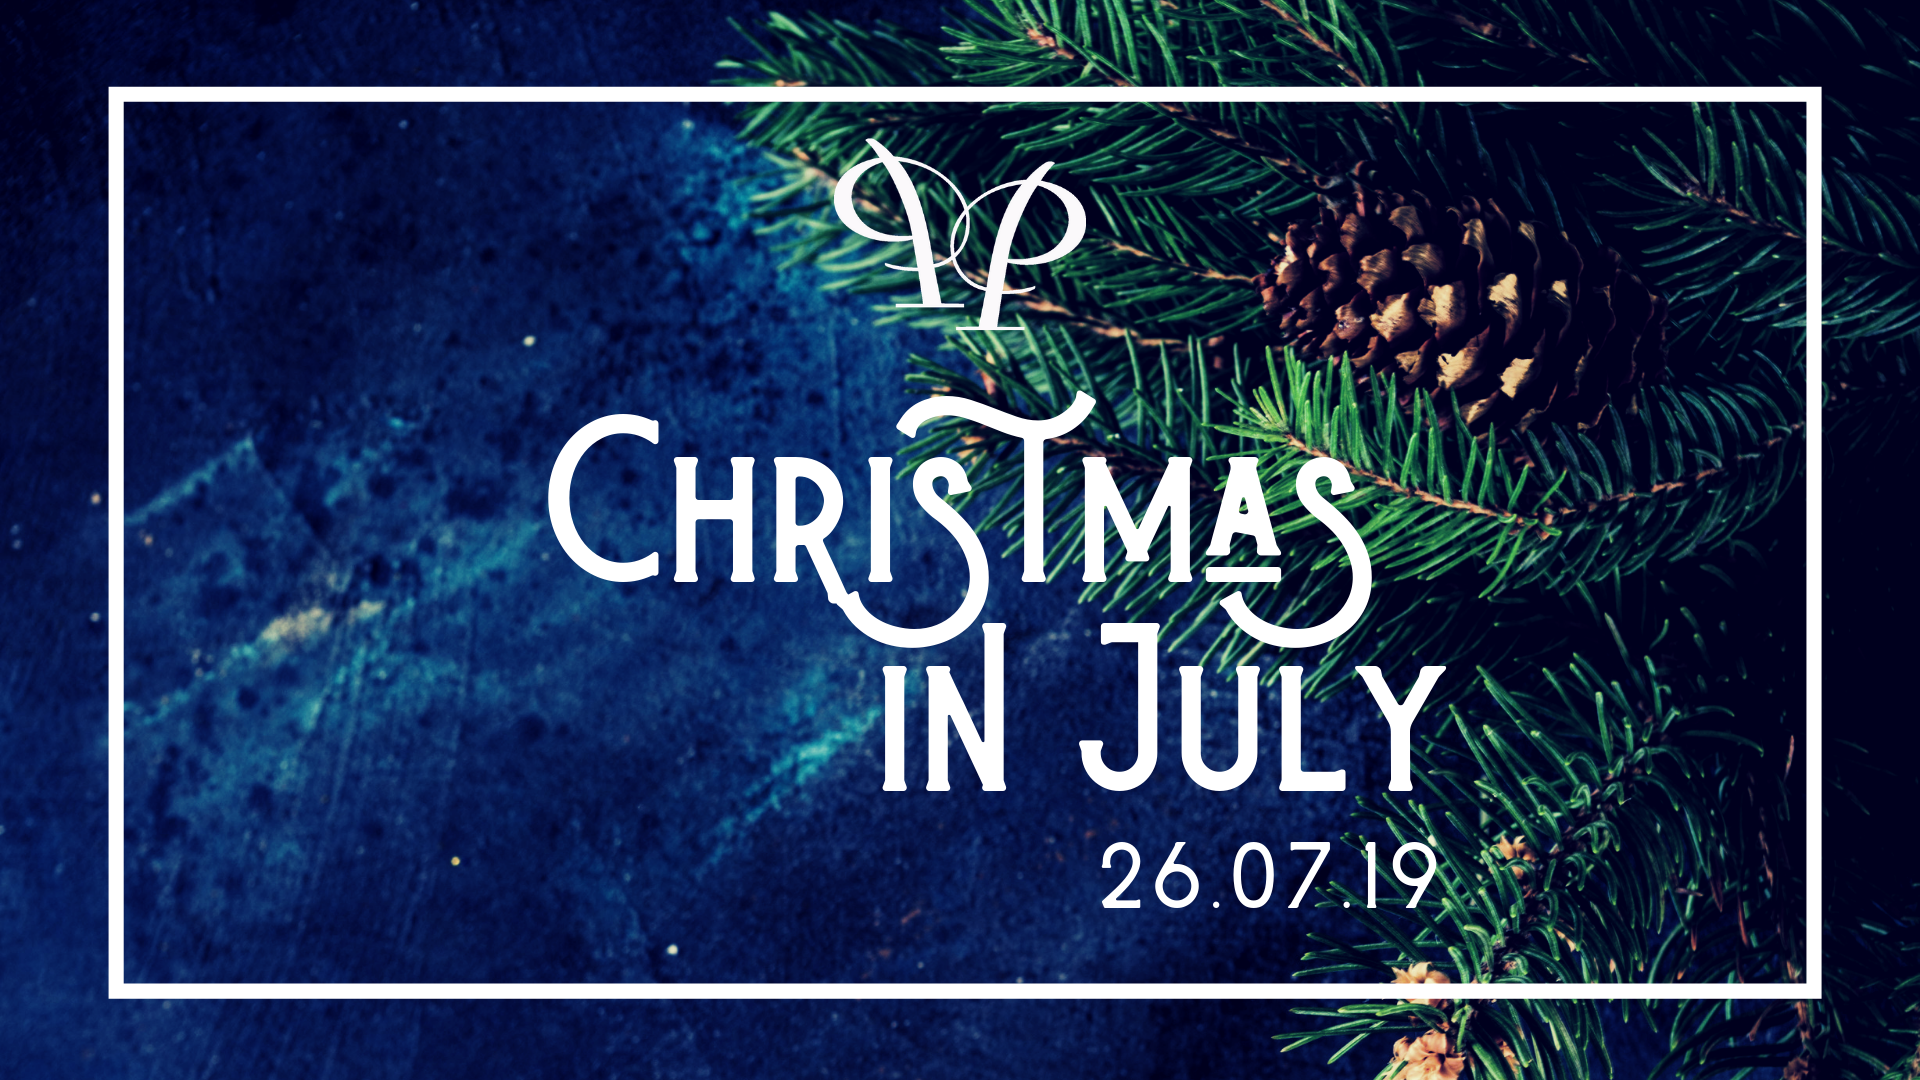 Christmas In July 2019 Images.Christmas In July Friday 26th July 2019